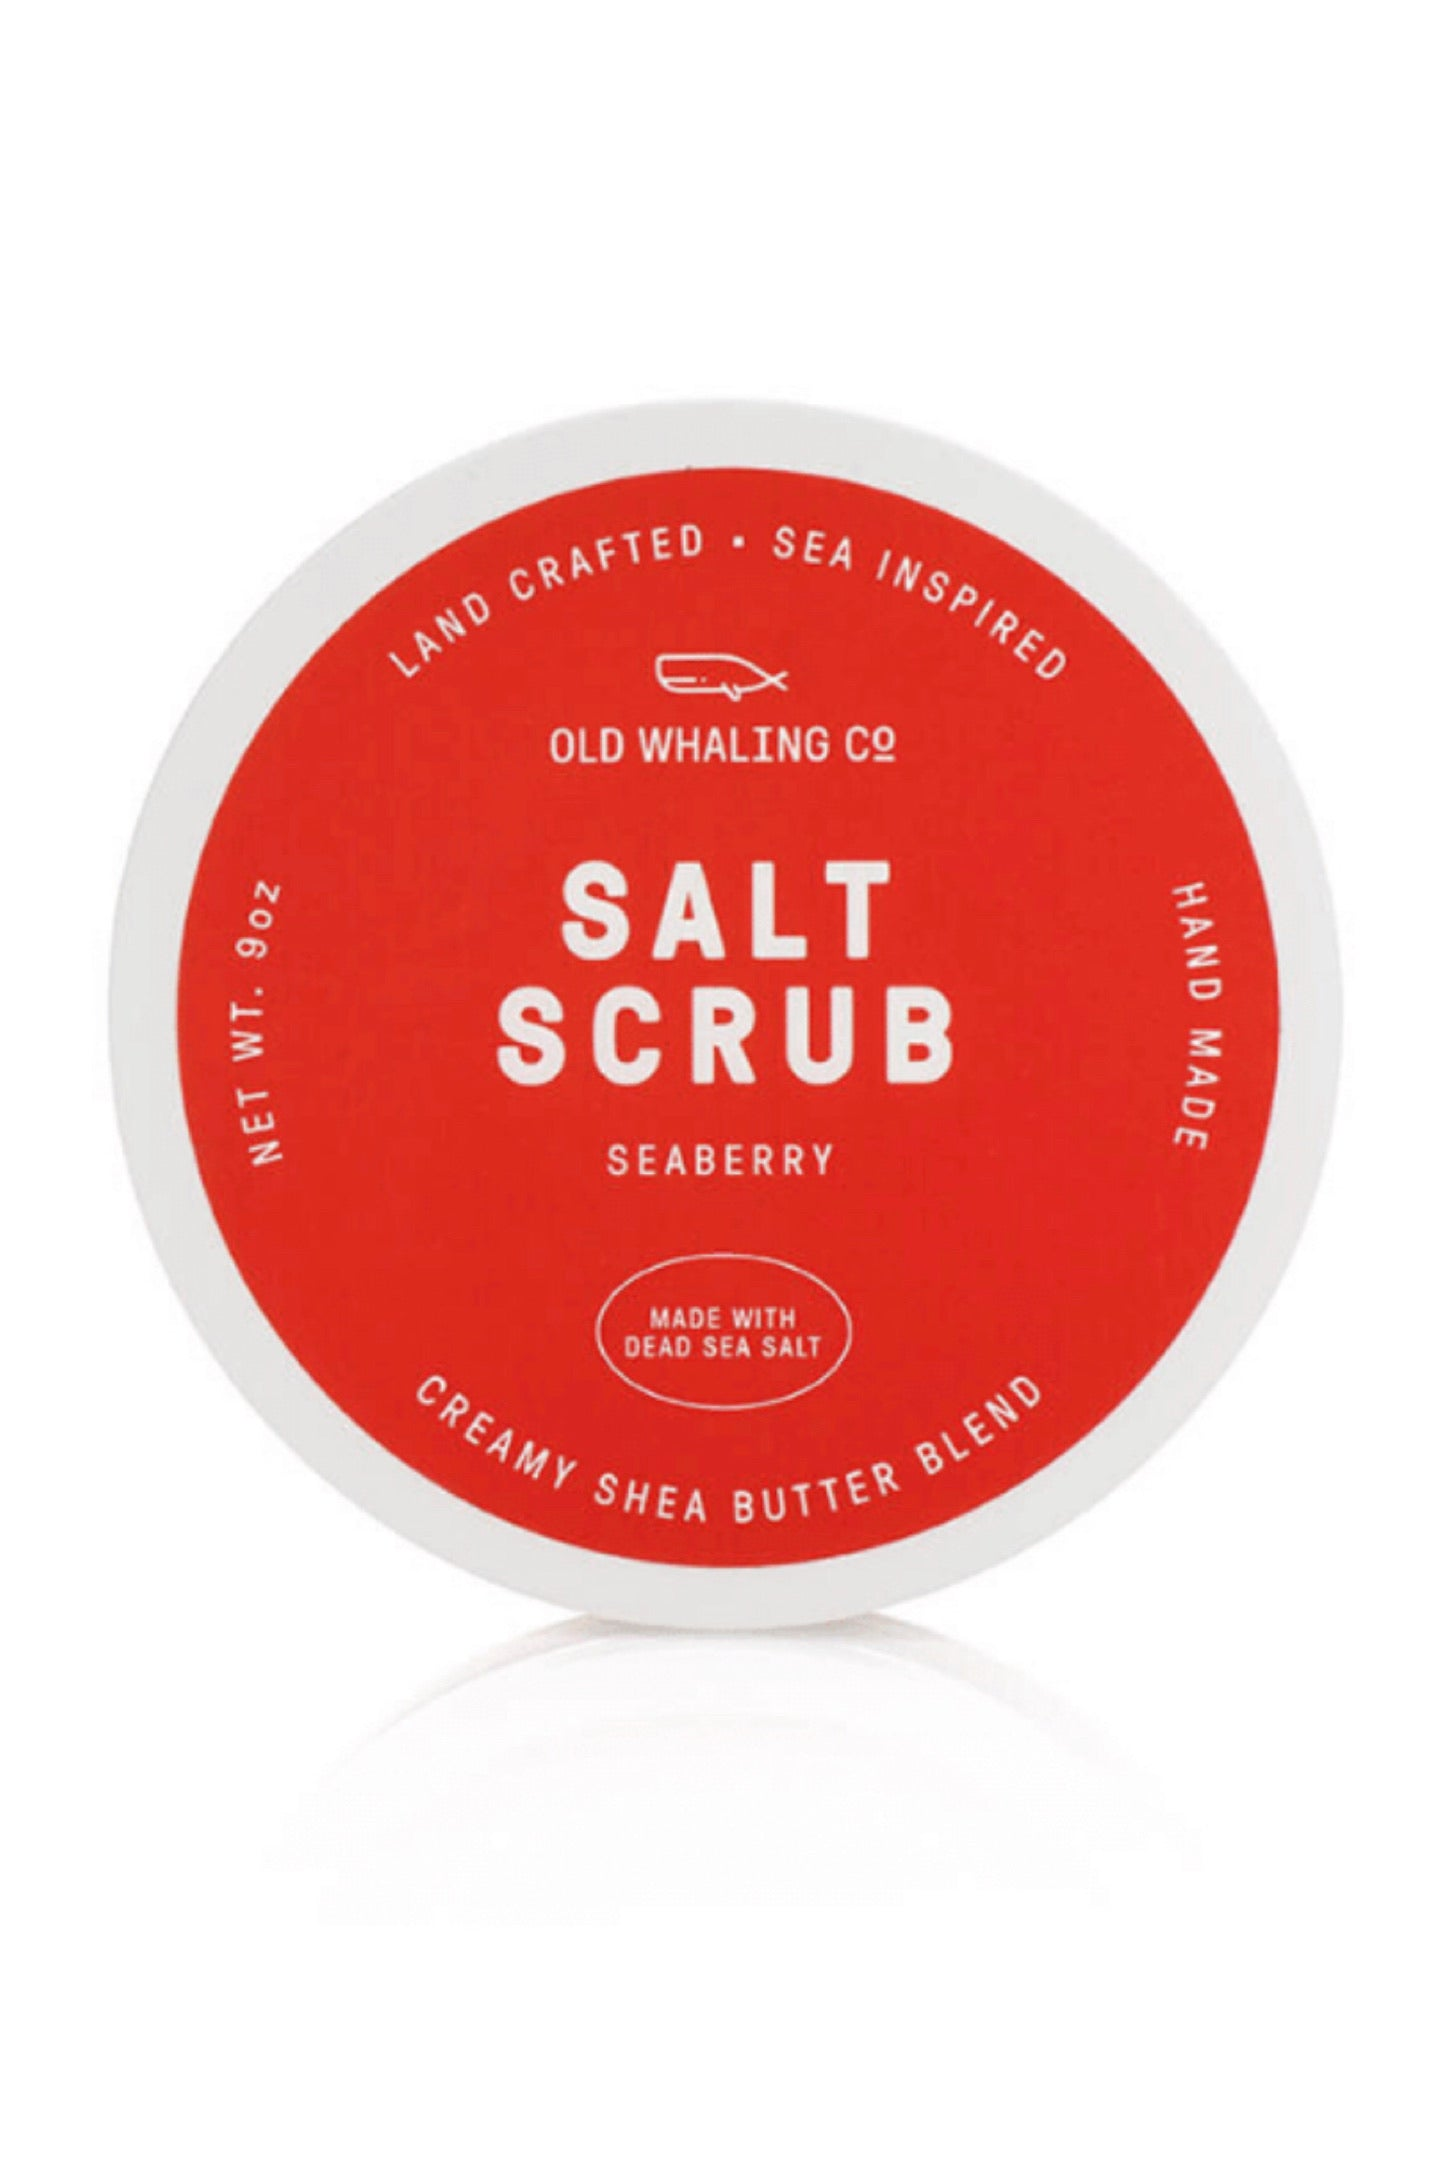 Seaberry Salt Scrub by Old Whaling Co